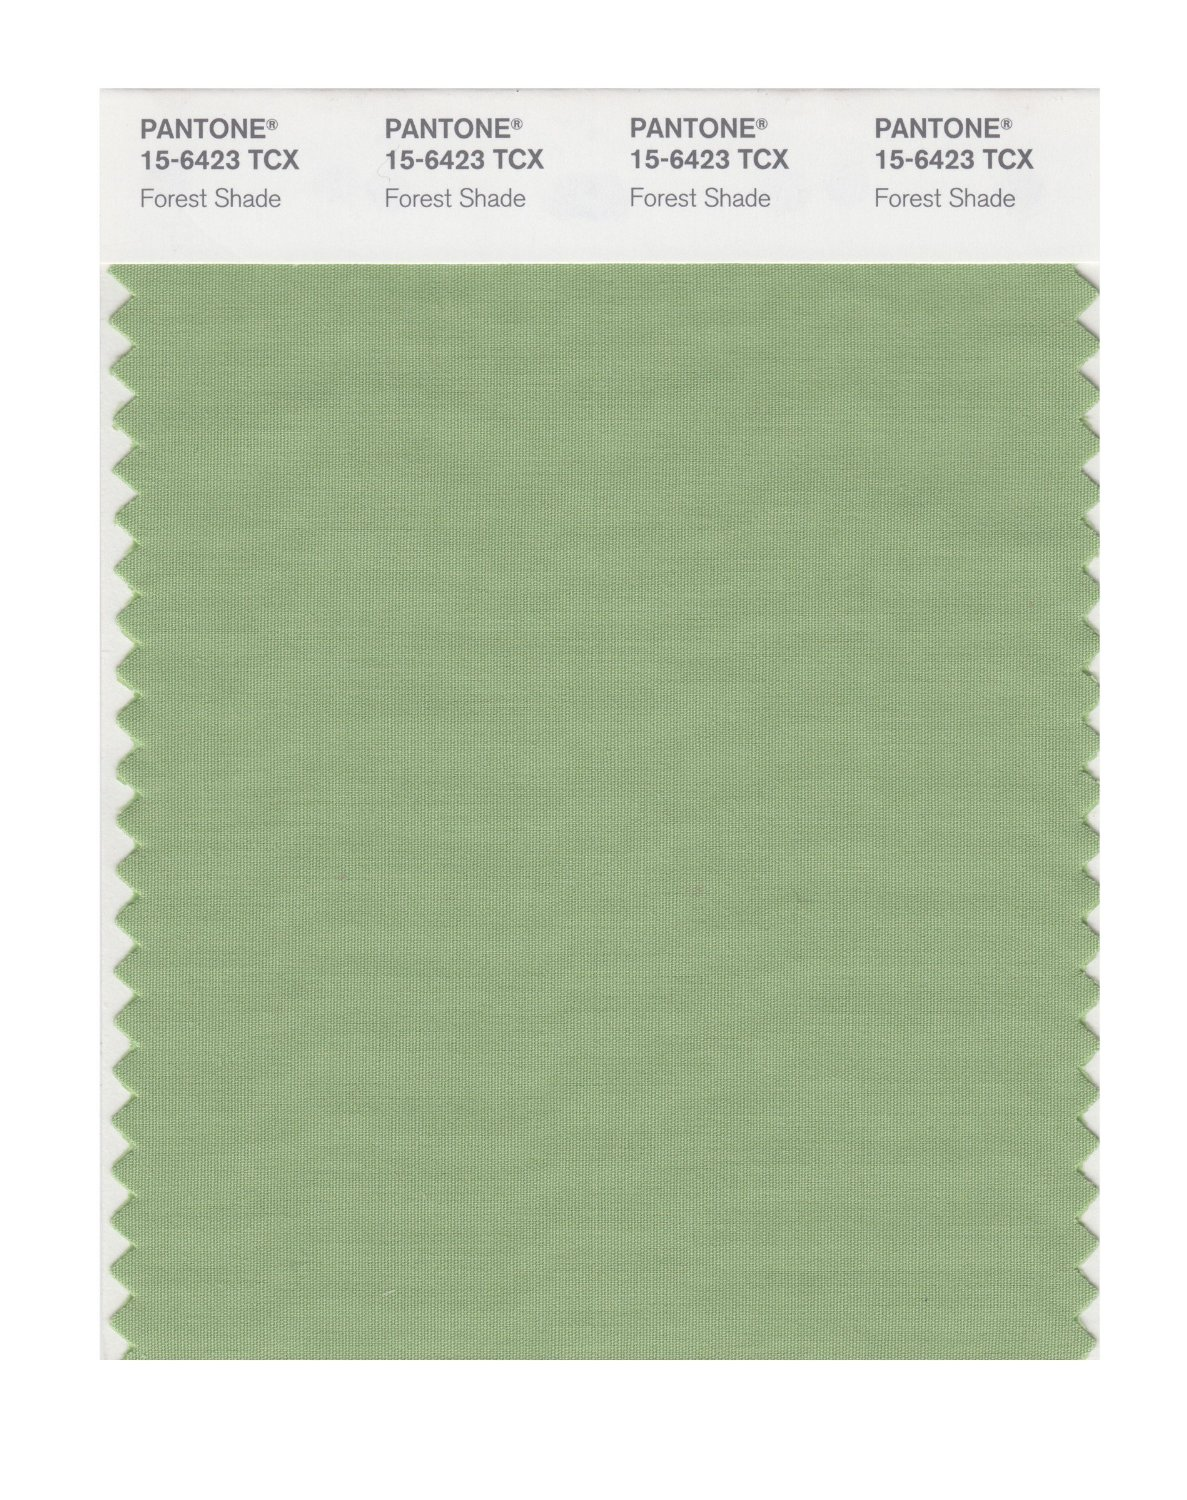 Pantone Smart Swatch 15-6423 Forest Shade